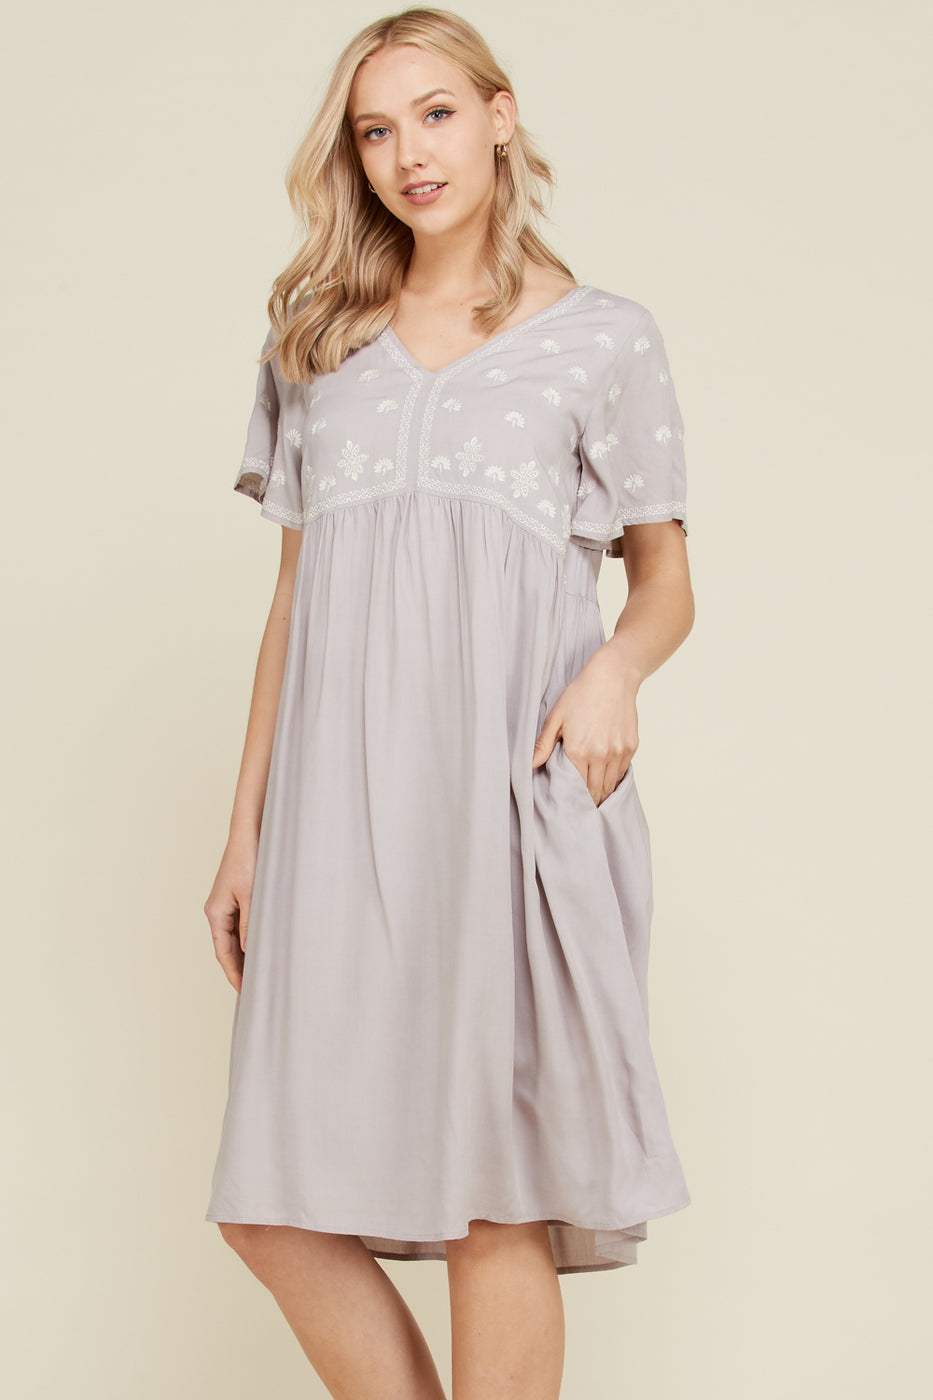 Helen Short Sleeve Embroider Babydoll Dress With V-Neck In Grey Siin Bees